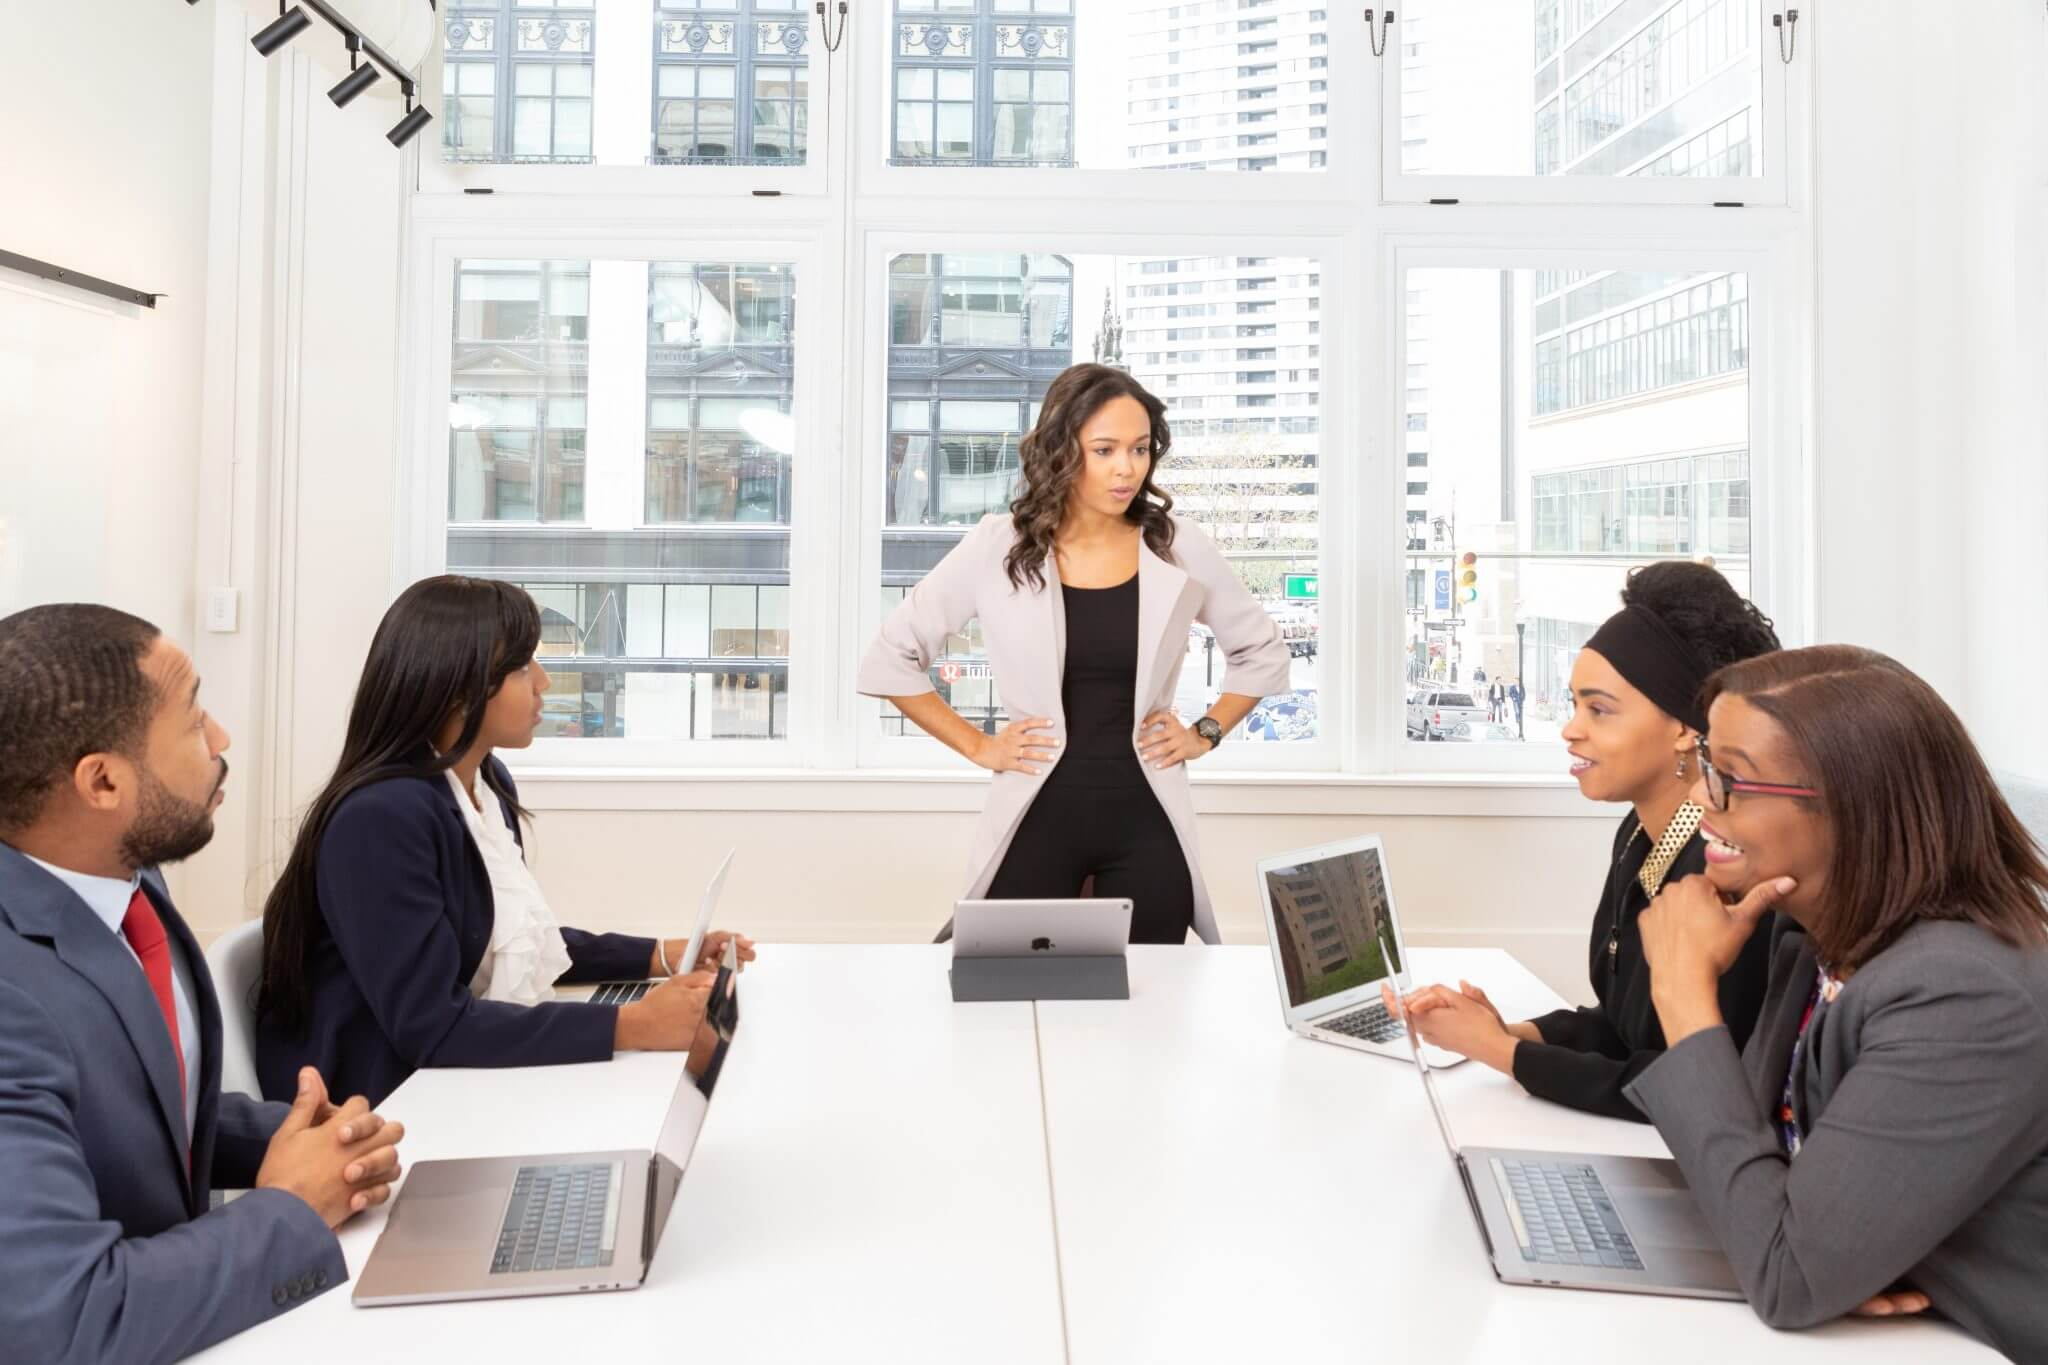 Leader of a company standing in front of a conference table with seated employees